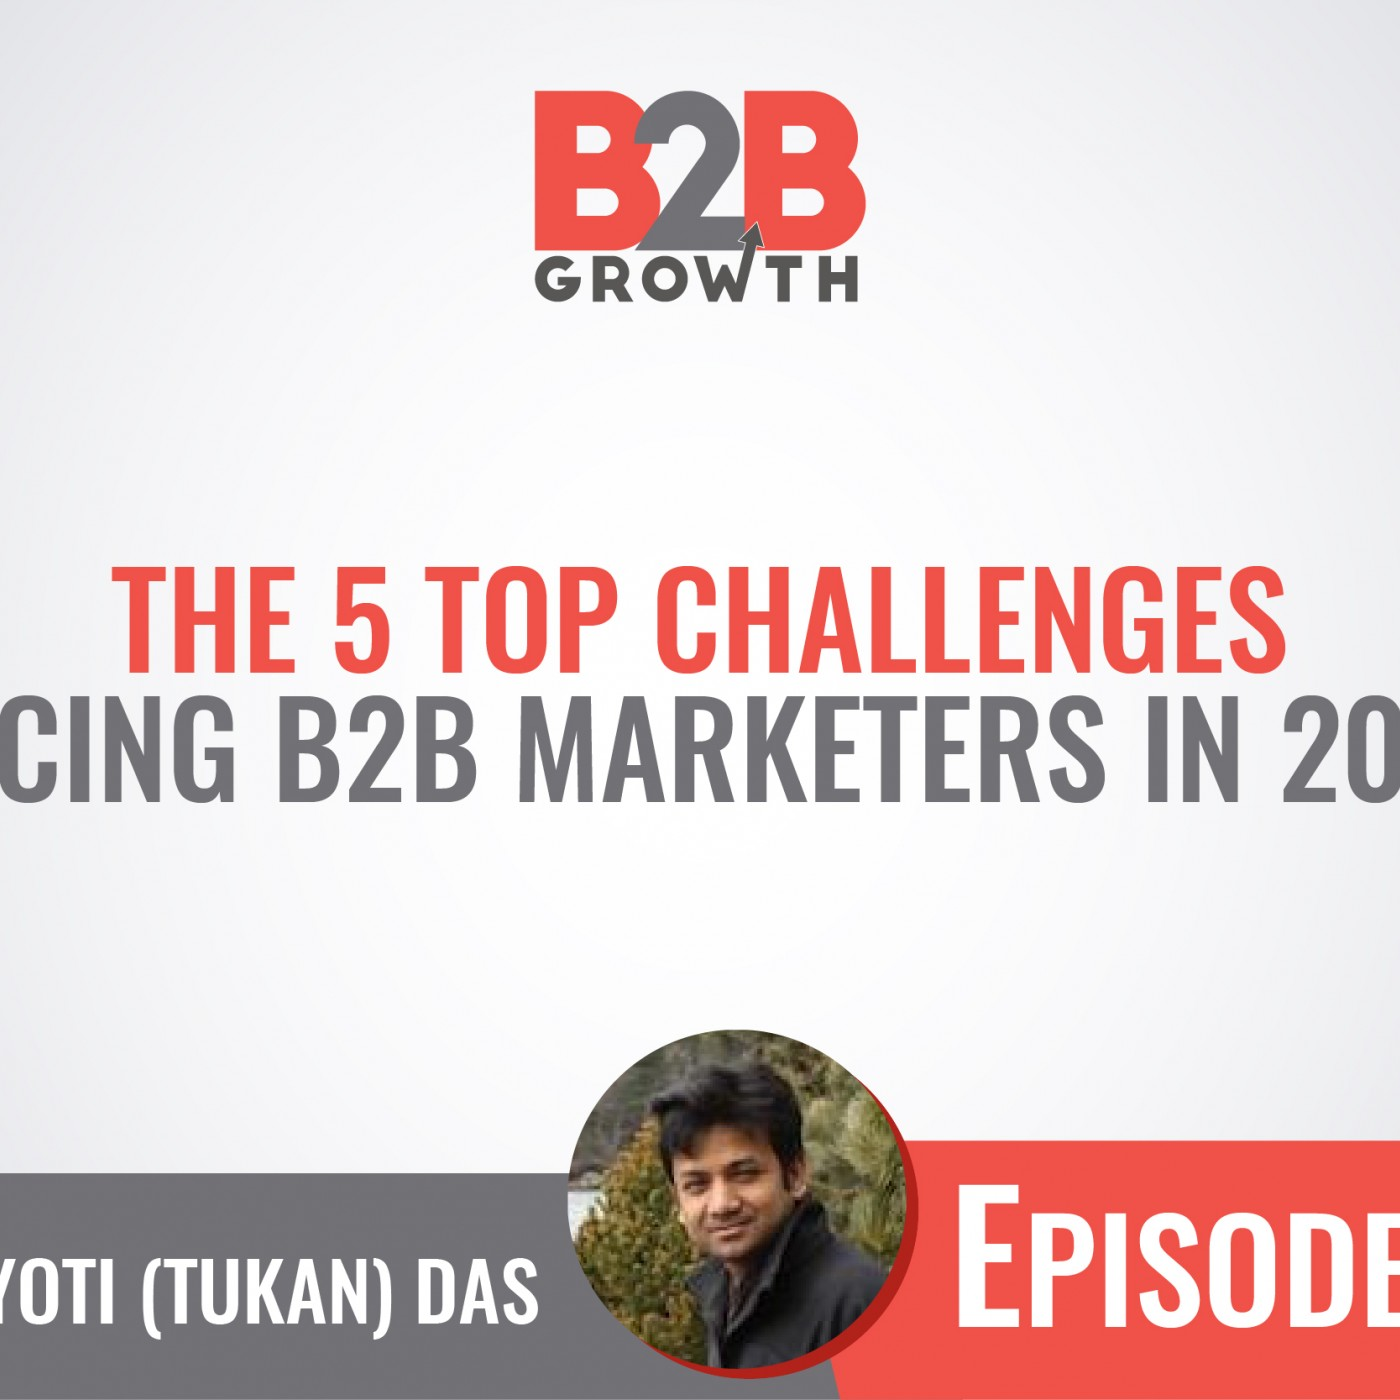 508: The 5 Top Challenges Facing B2B Marketers in 2017 w/ Tukan Das